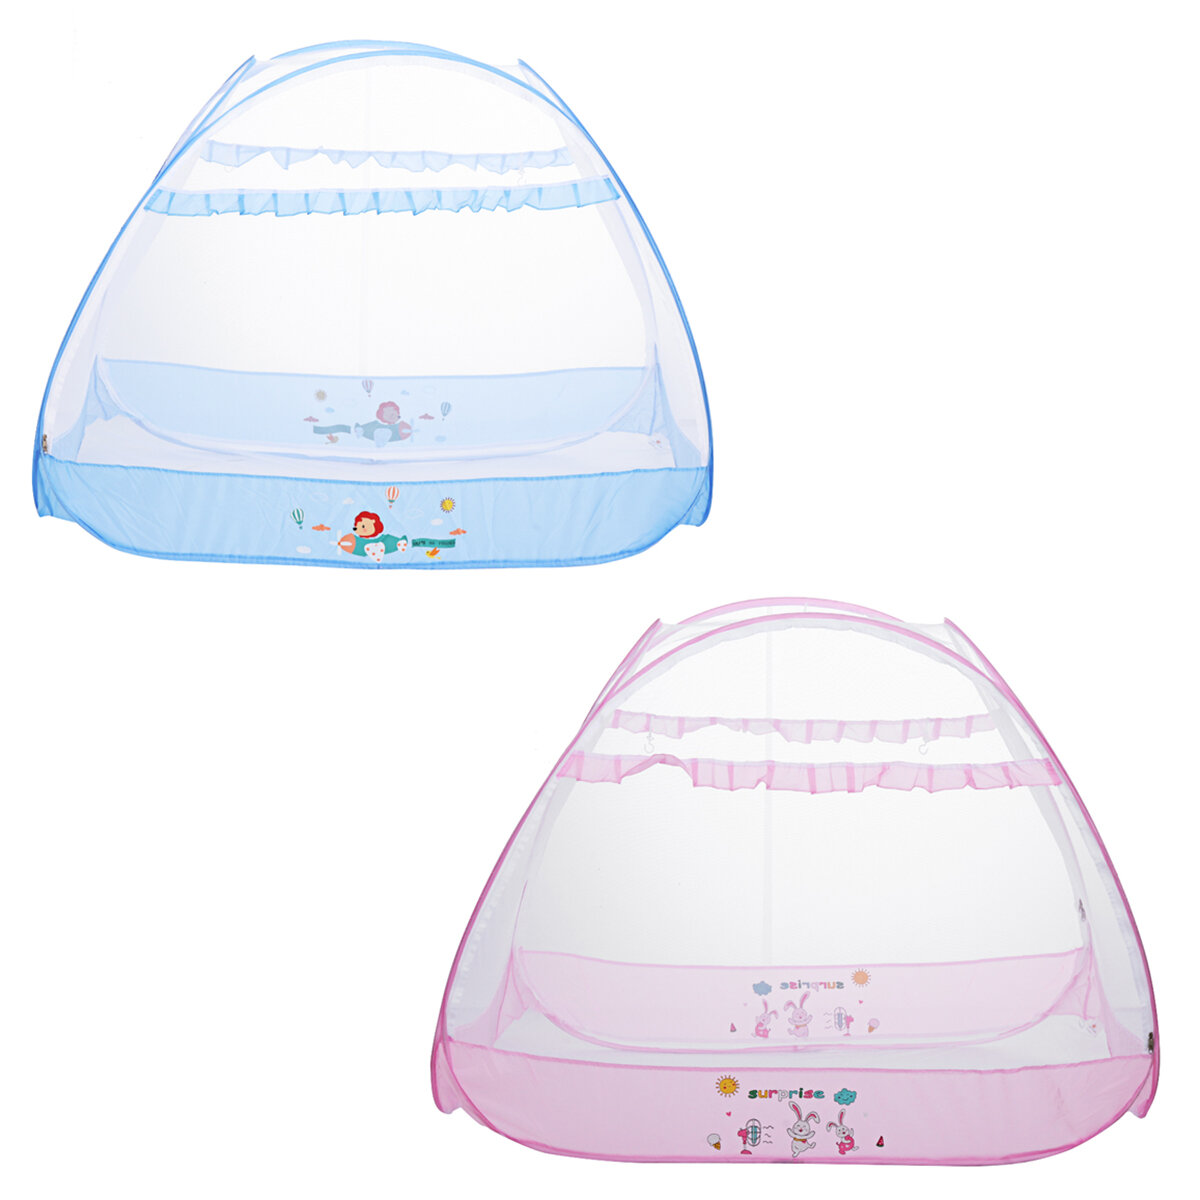 Foldable Baby Crib Canopy Safety Tent Mesh Crib Cover Cute Animal Printed Baby Bed Tent Mosquito Net For Kids Bedroom